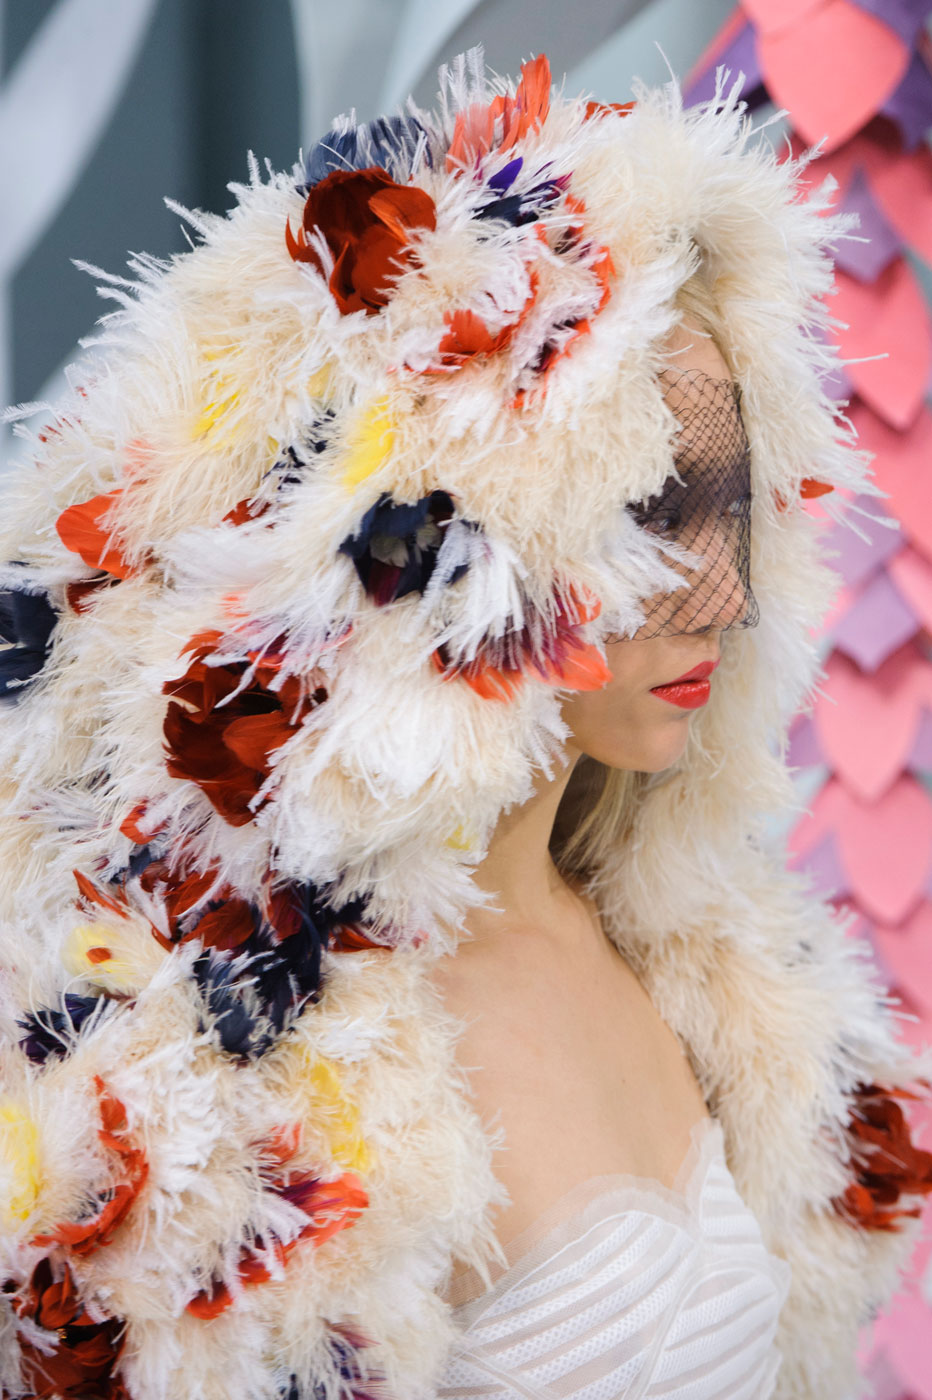 Chanel-fashion-runway-show-close-ups-haute-couture-paris-spring-summer-2015-the-impression-133